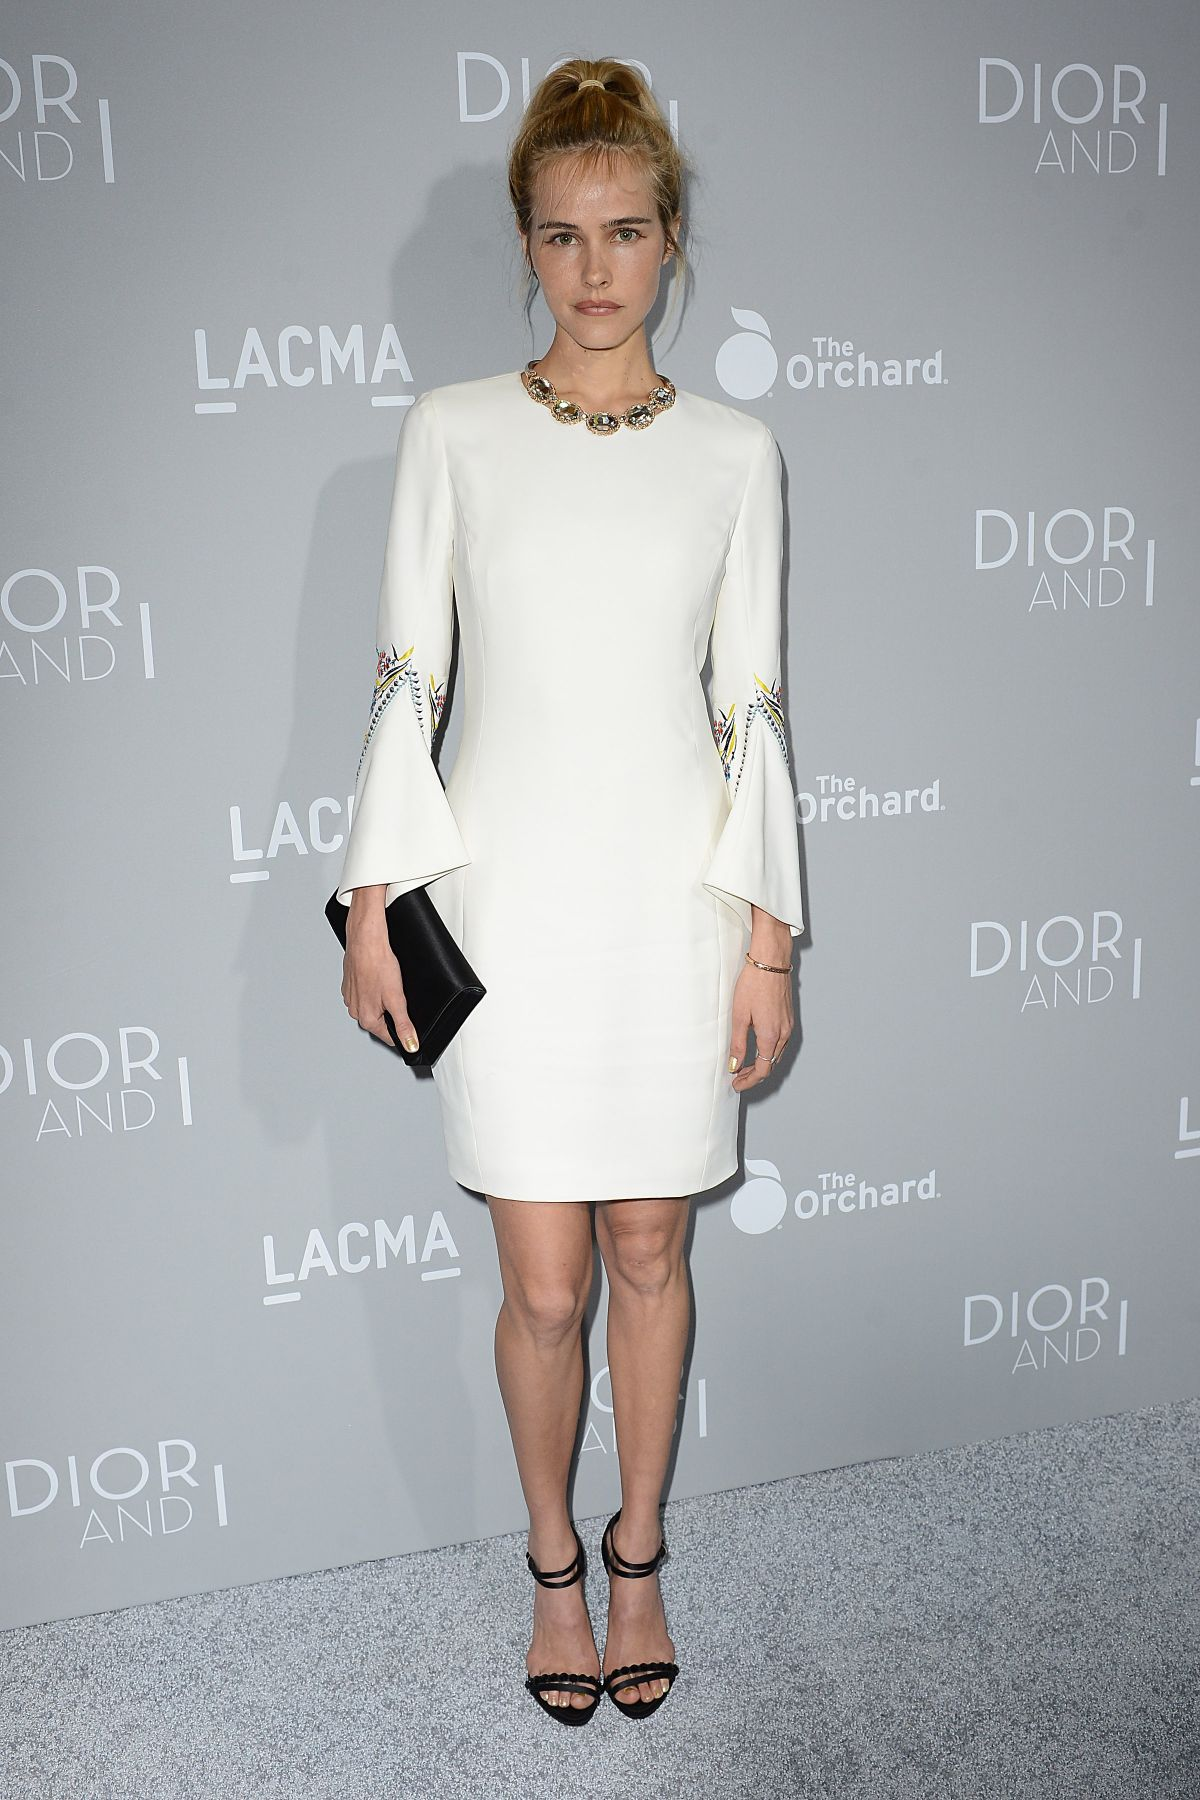 ISABEL LUCAS at Dior and I Premiere in Los Angeles